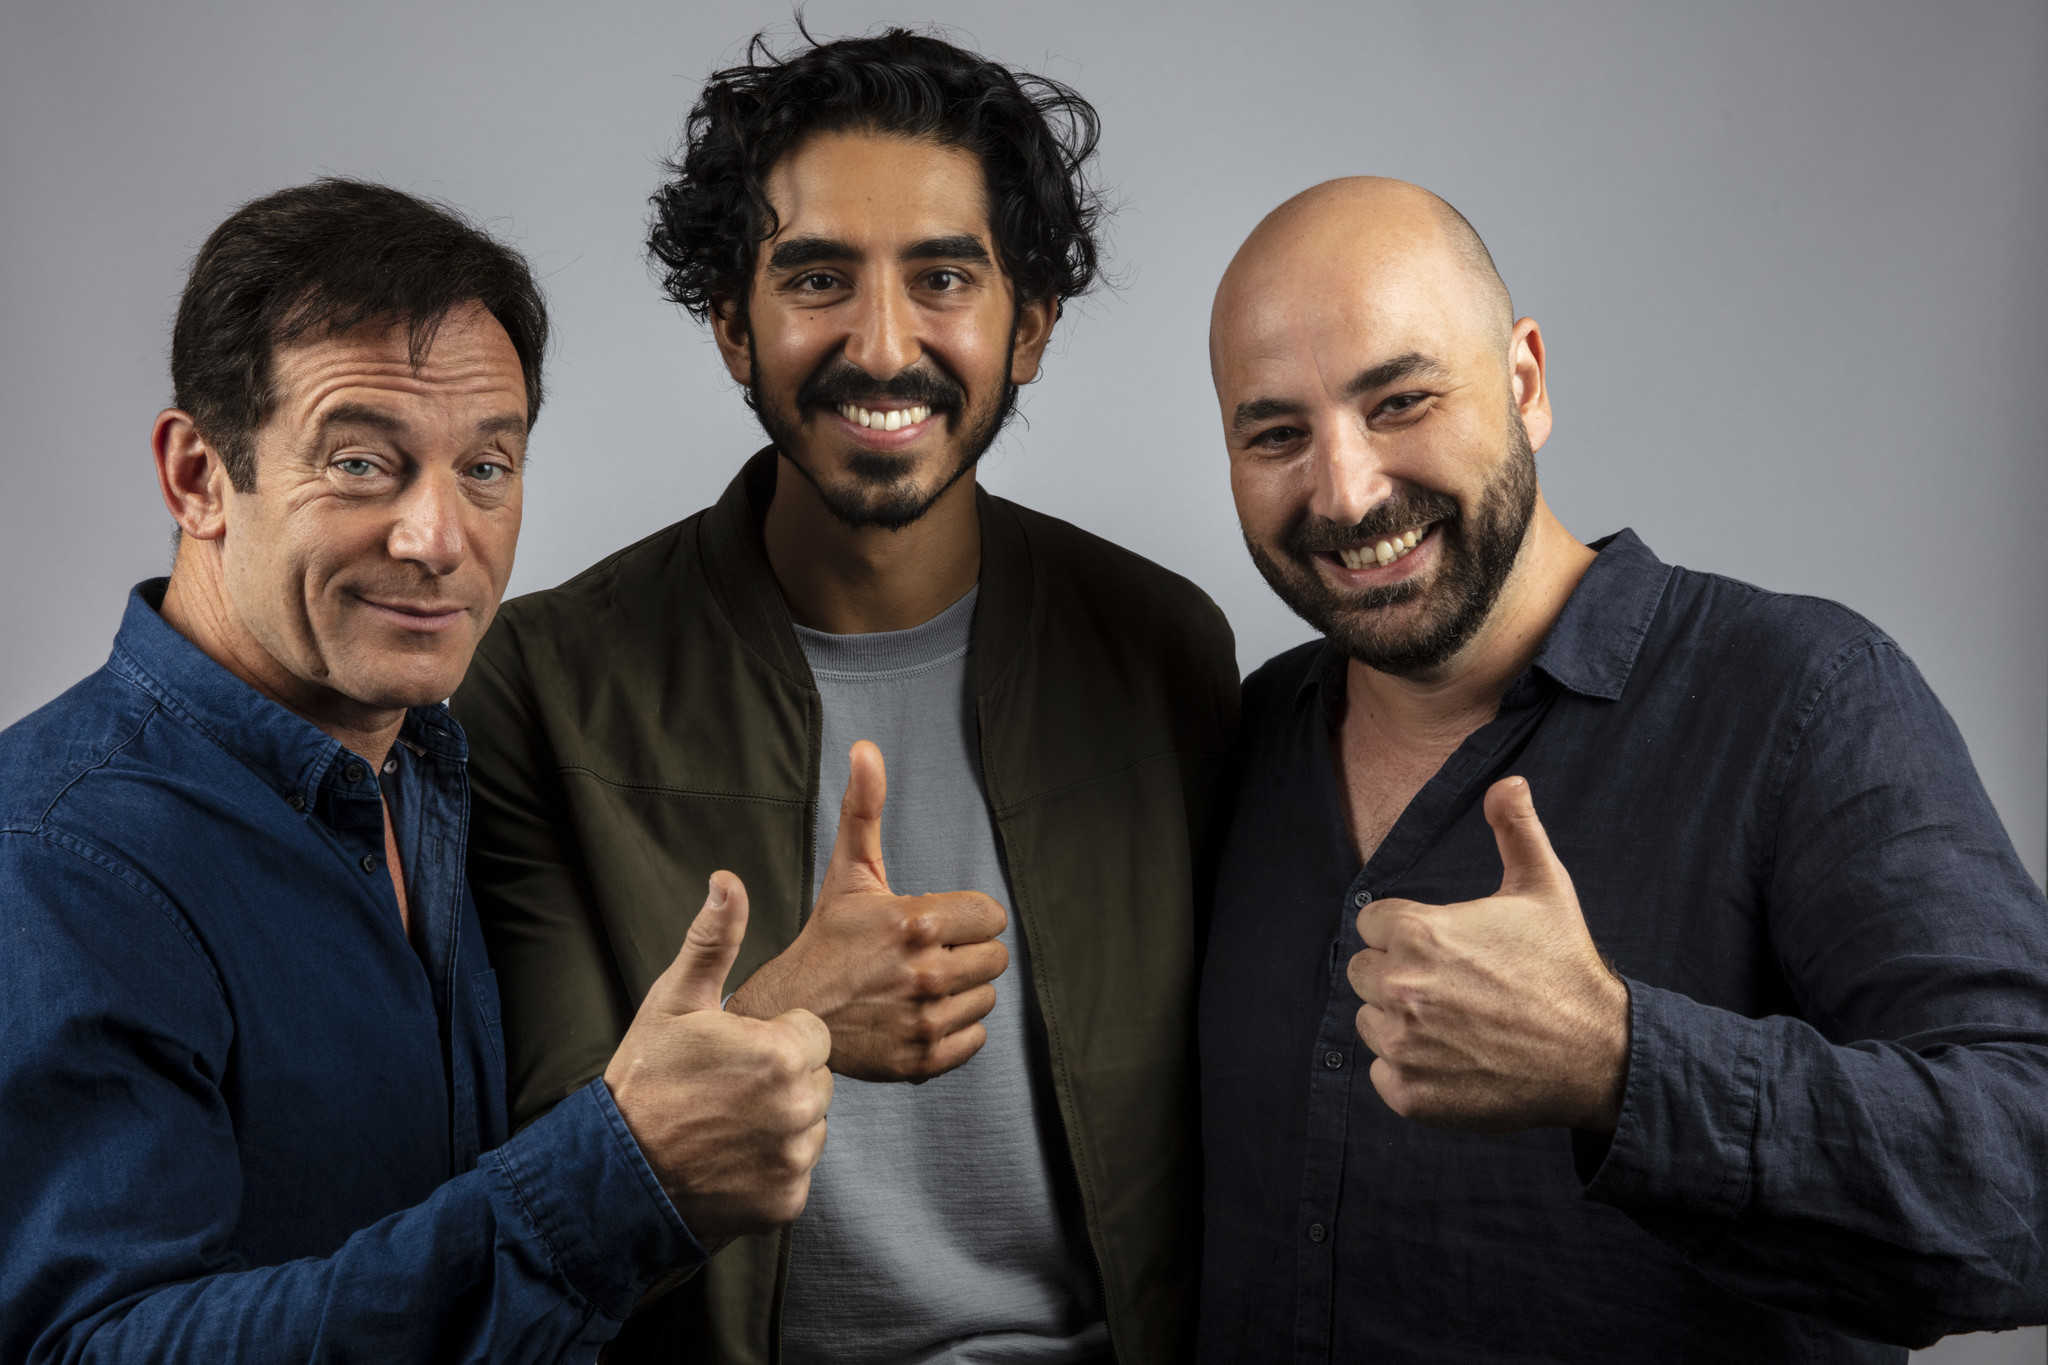 TORONTO, ONT. — SEPTEMBER 07, 2018-- Actor Jason Isaacs, actor Dev Patel, and director Anthony Mar